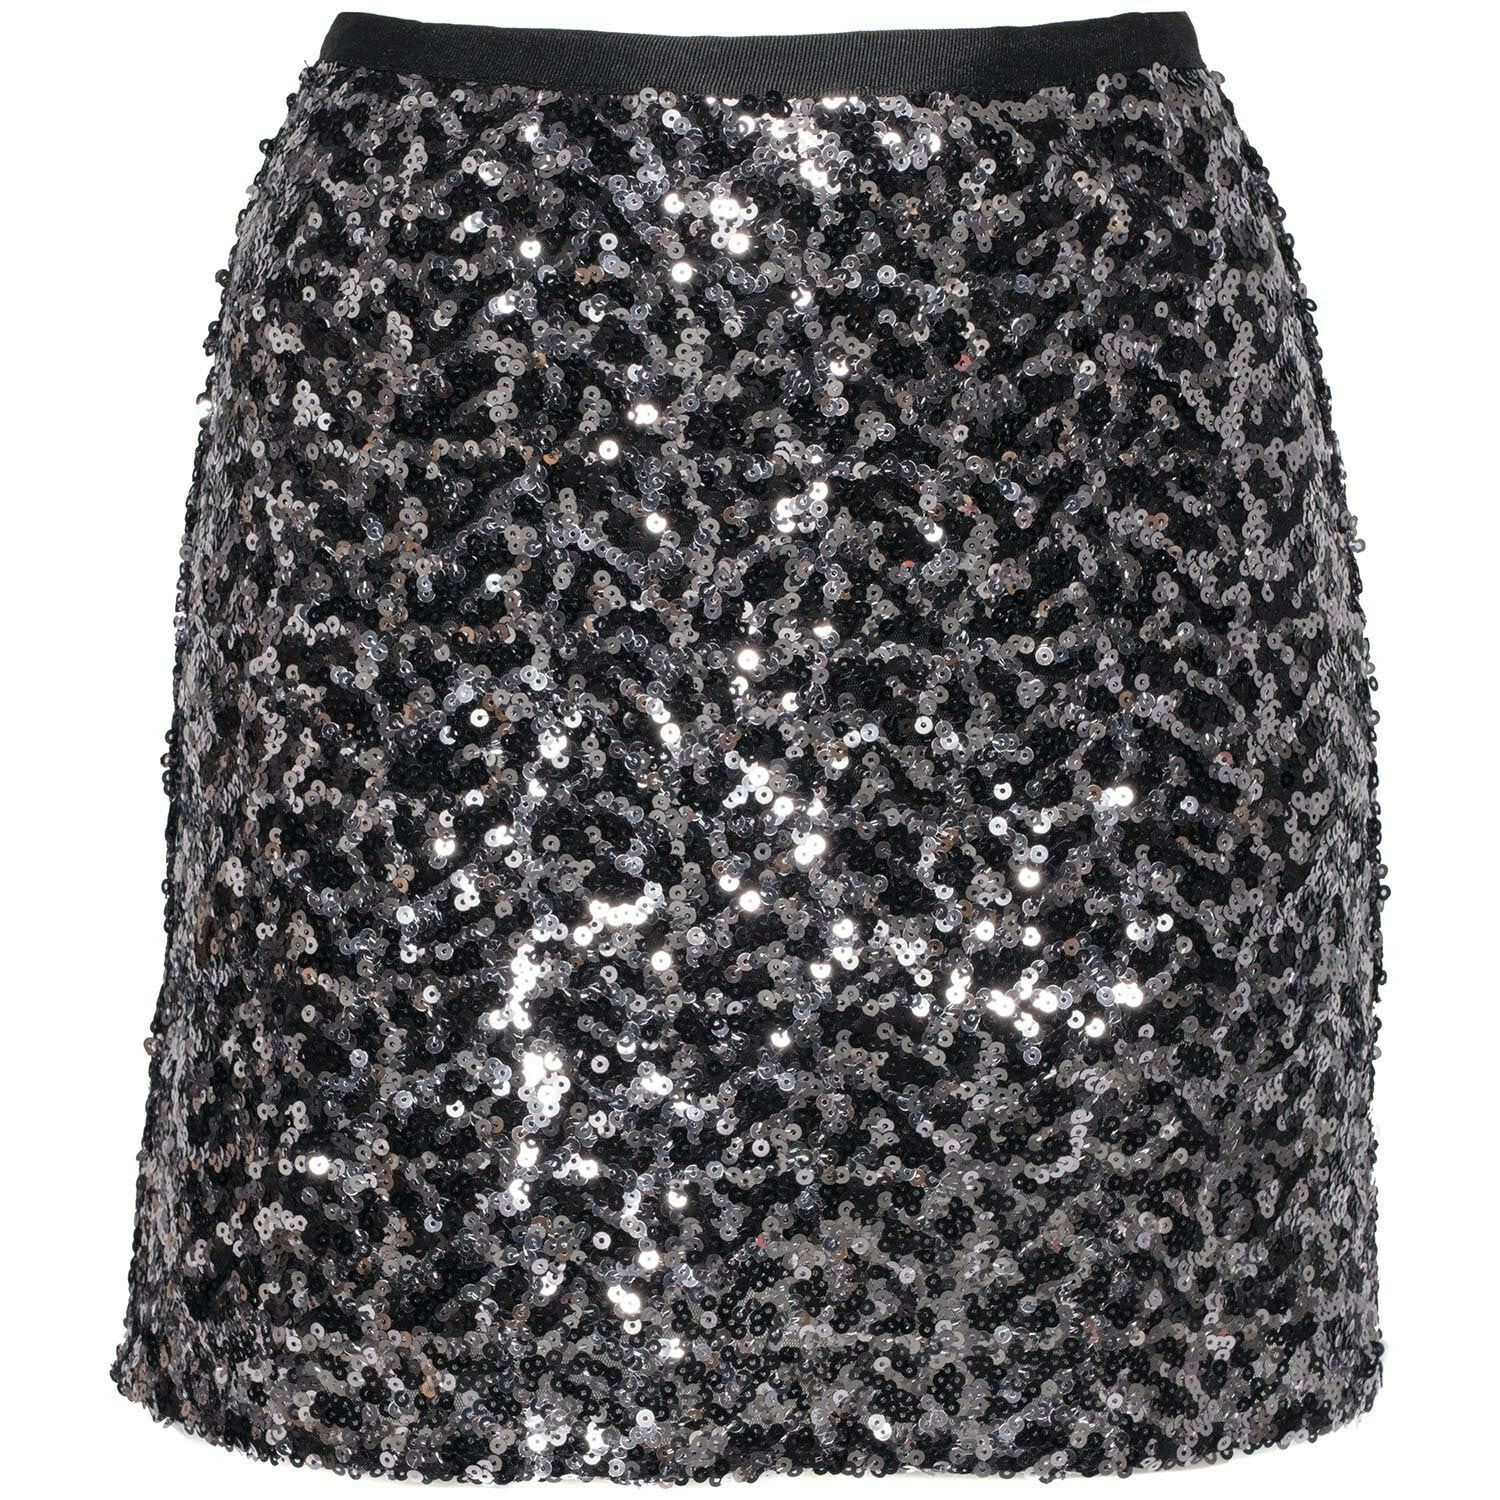 SILVER SEQUINED SKIRT